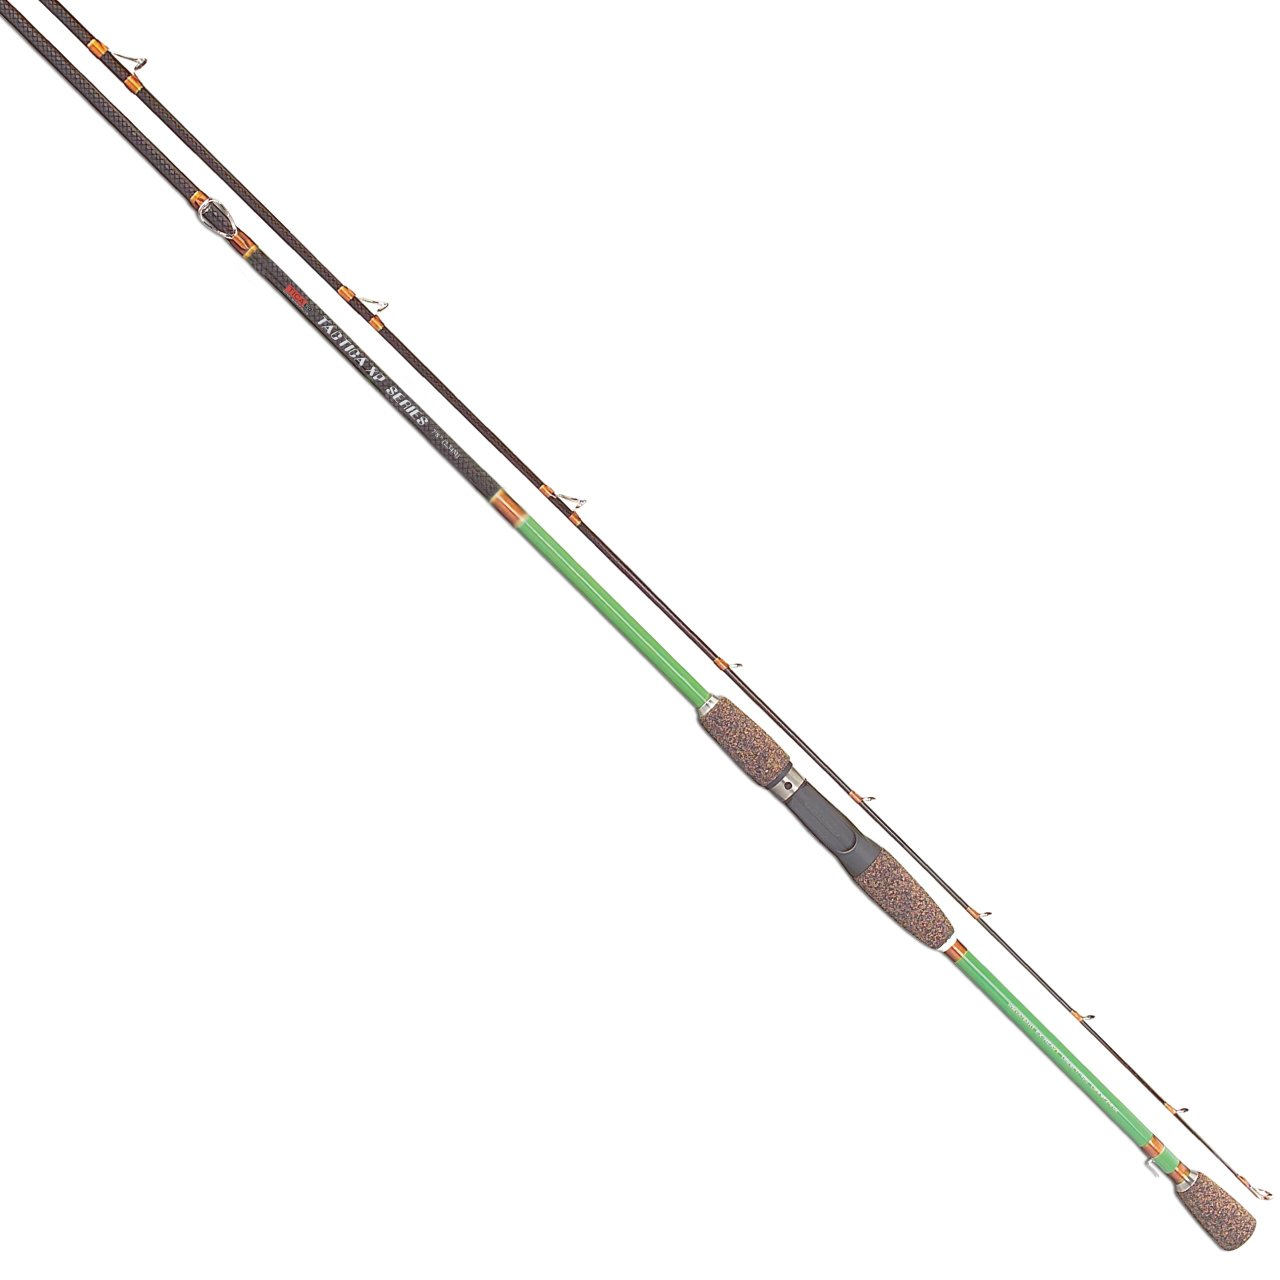 Tica wmva73mh1 bass and walleye casting fishing rod for Tica fishing rods